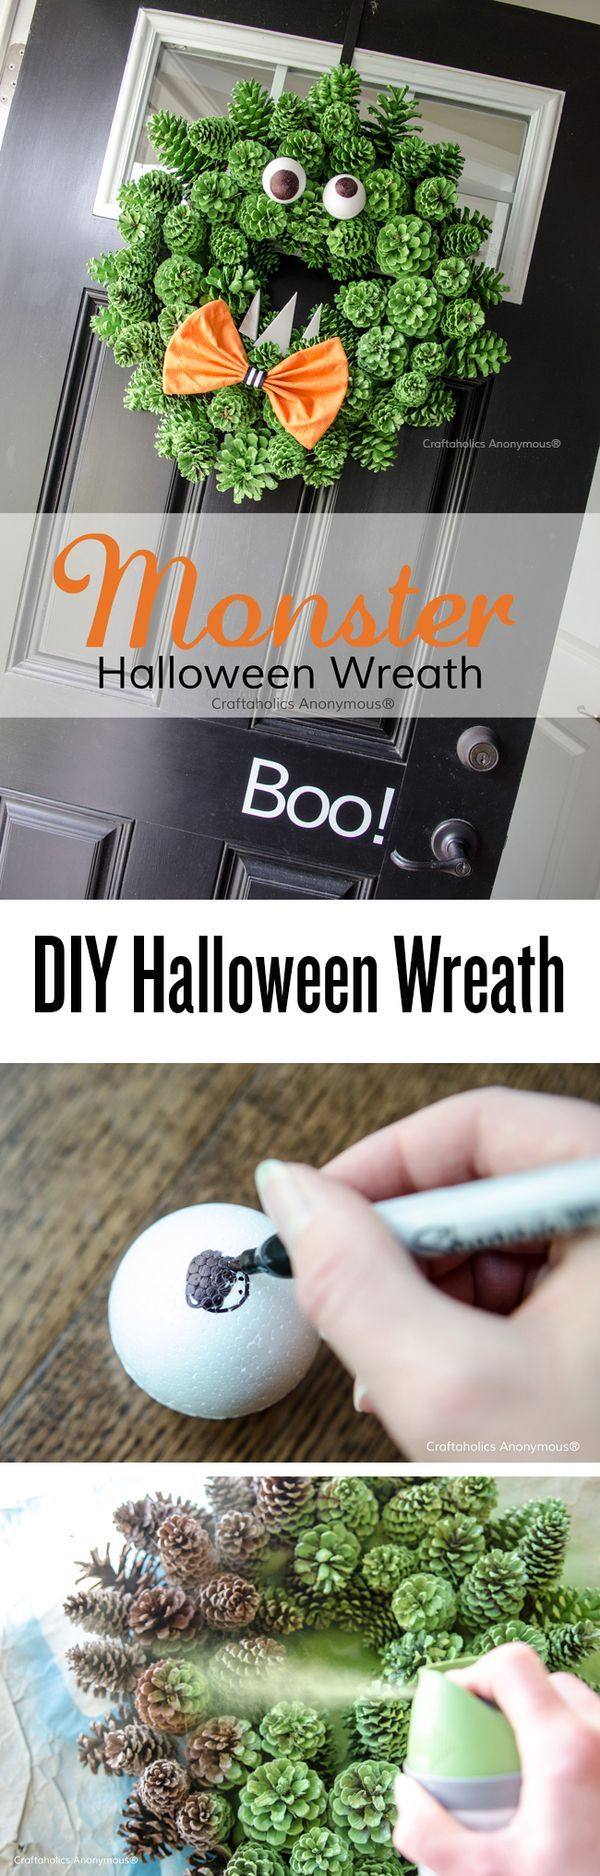 Pinecone Monster Wreath tutorial. One of the cleverest Halloween wreaths I've ever seen! Great way to reuse an old Christmas pinecone wreath. #halloween #ideas #wreath